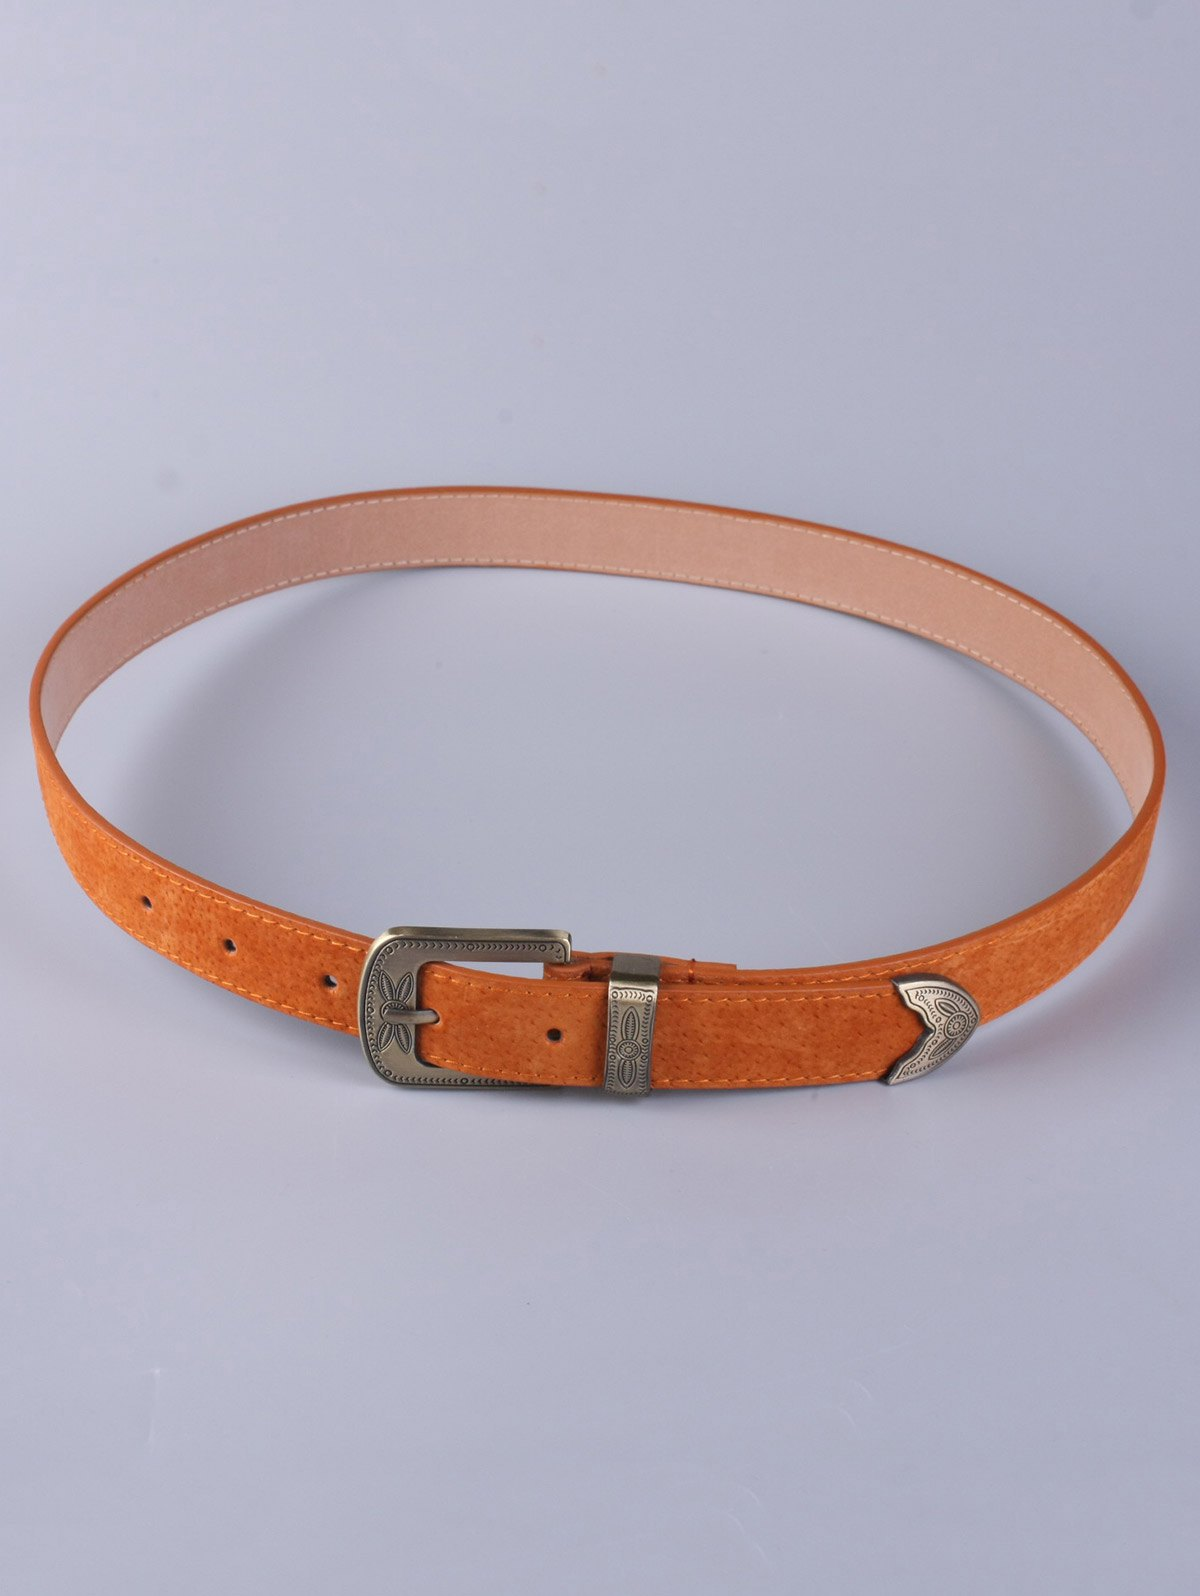 Trousers Wear Retro Pin Buckle Belt